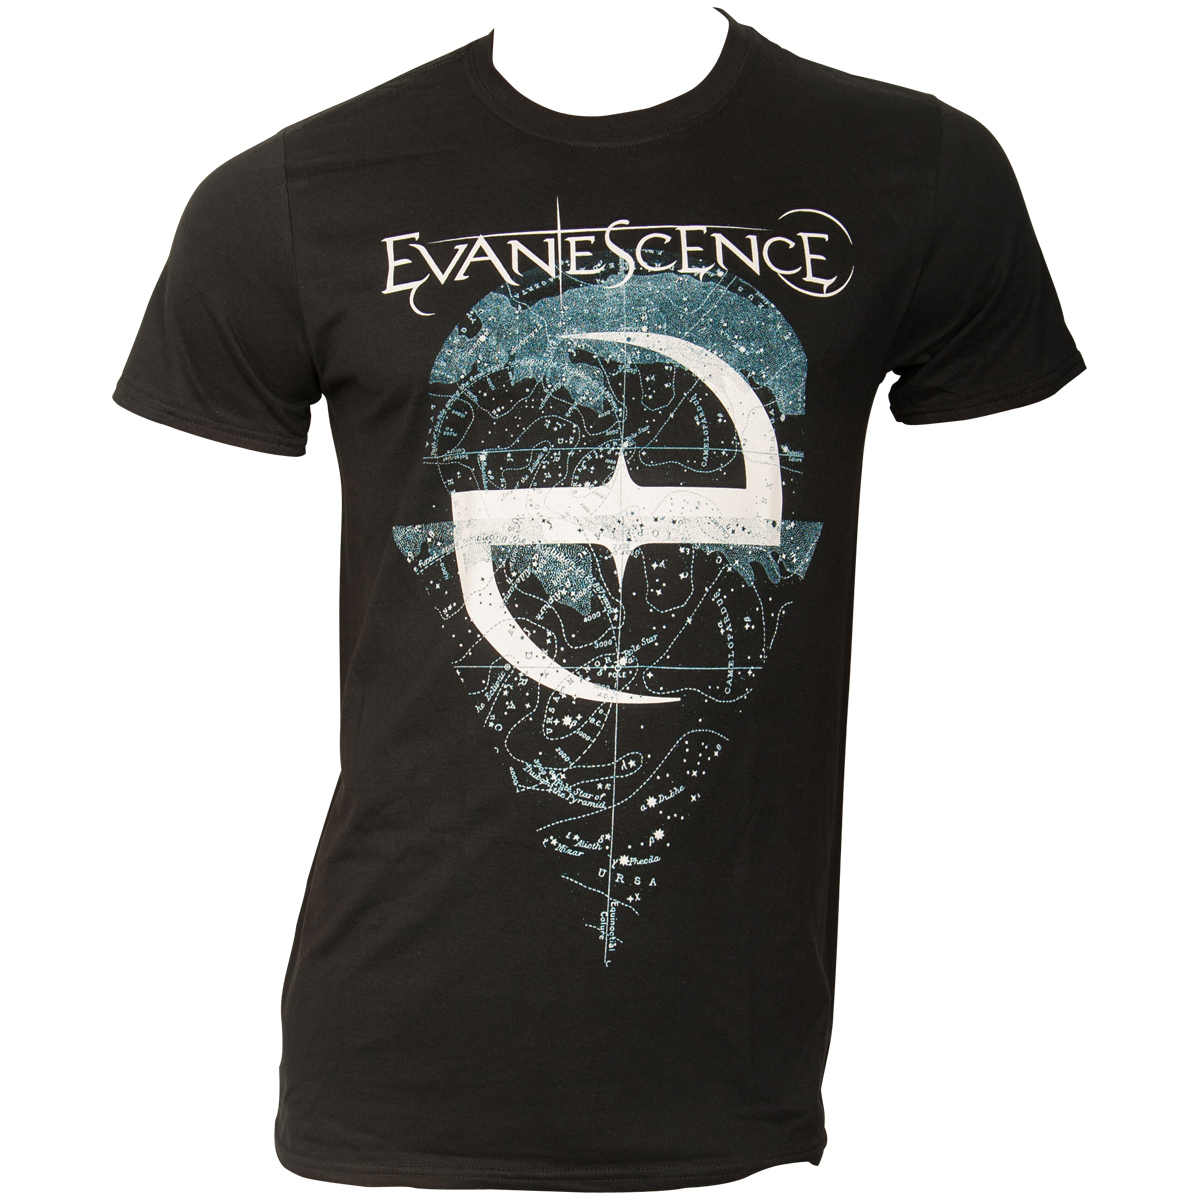 Evanescence - T-Shirt Space Map - schwarz